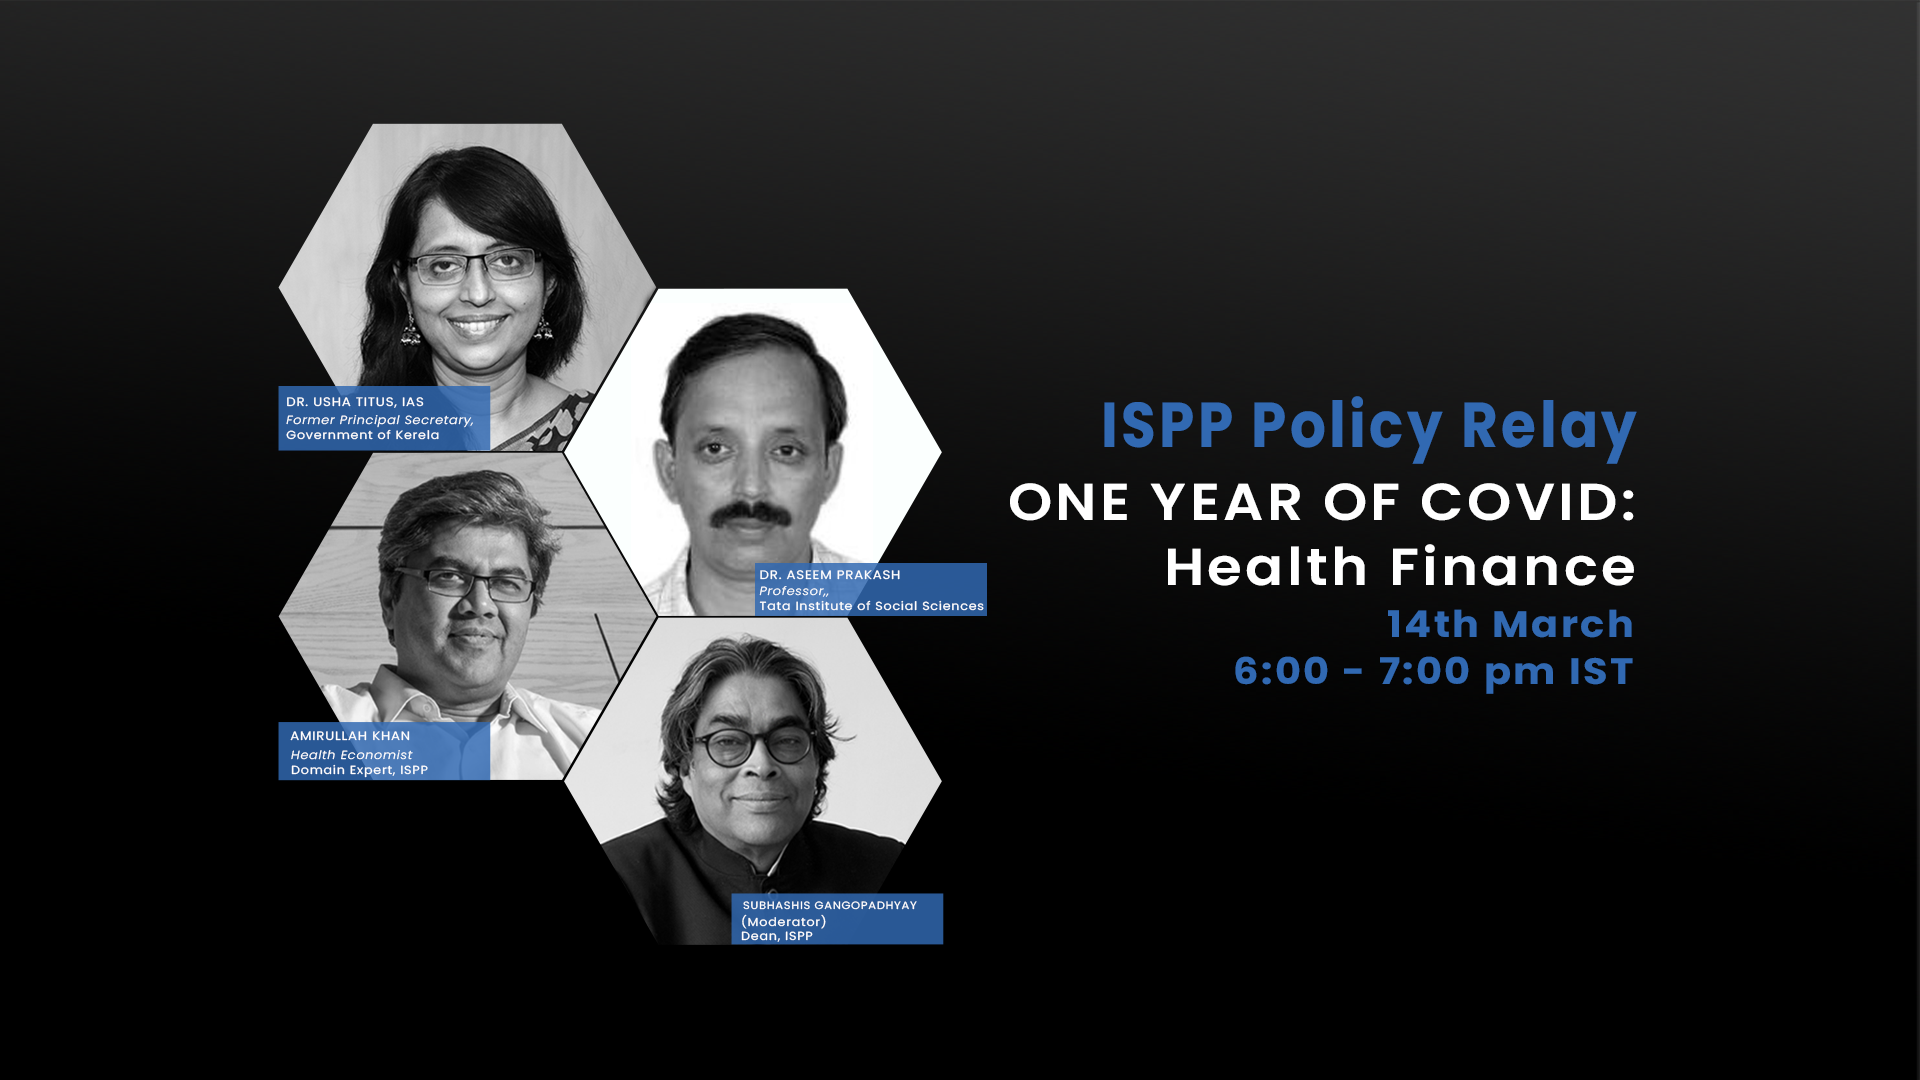 ISPP Policy Relay: One Year of COVID-19 in India